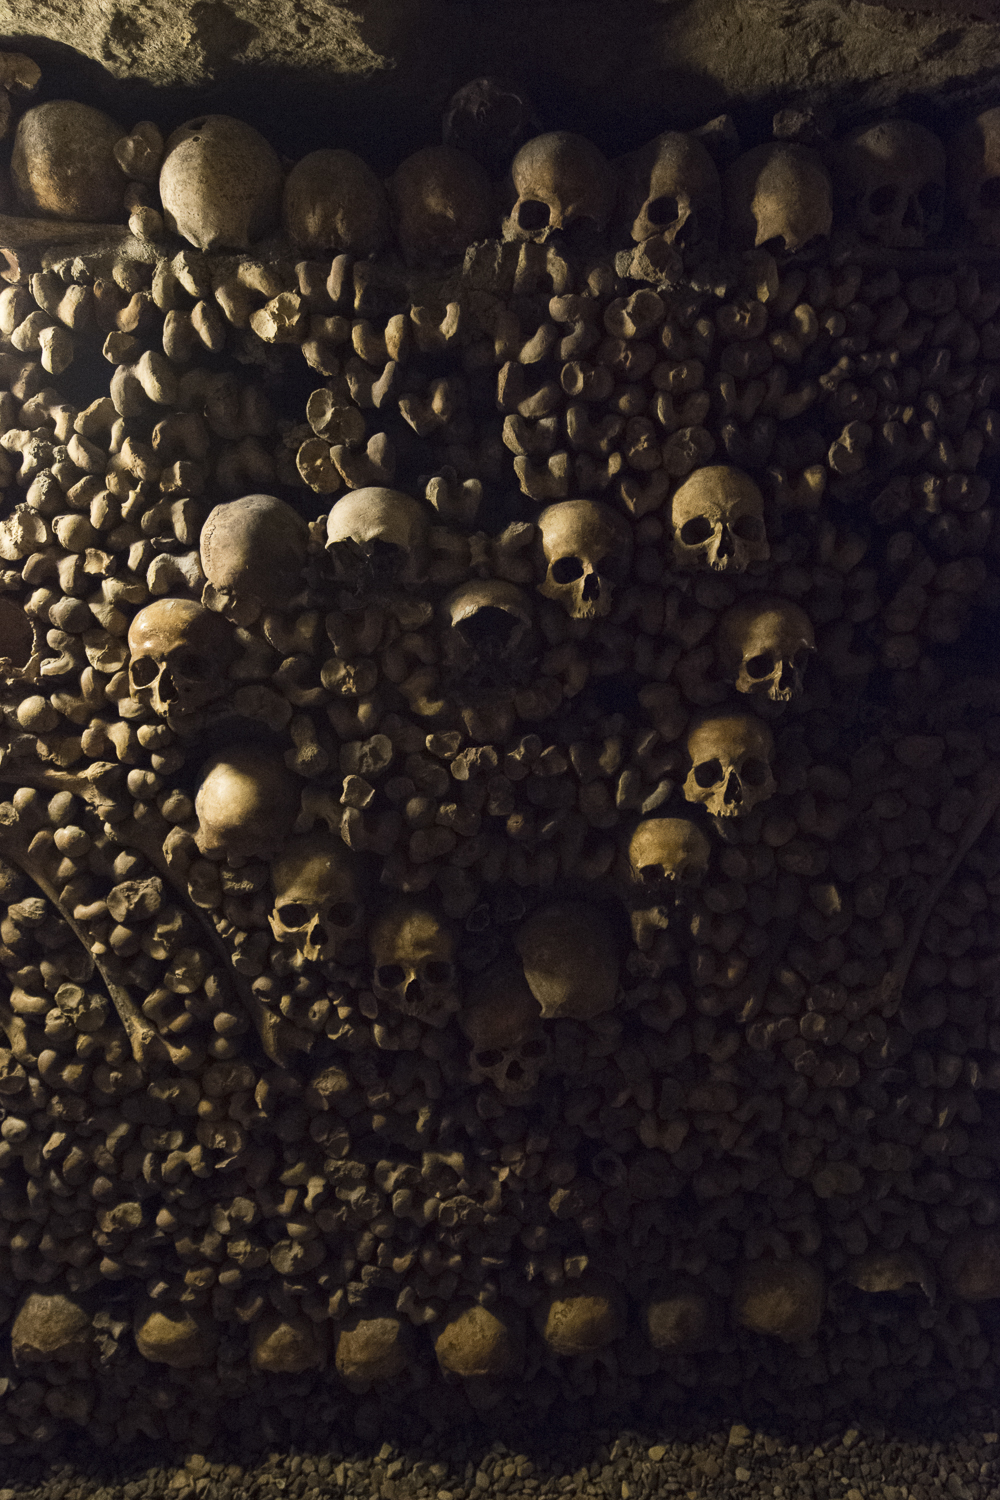 Catacombs of Paris - PHOTOGRAPHY : ALEXANDER J.E. BRADLEY - NIKON D610 - NIKKOR 14-24MM F/2.8 @ 21MM - F/2.8 - 1/30 - ISO:6400